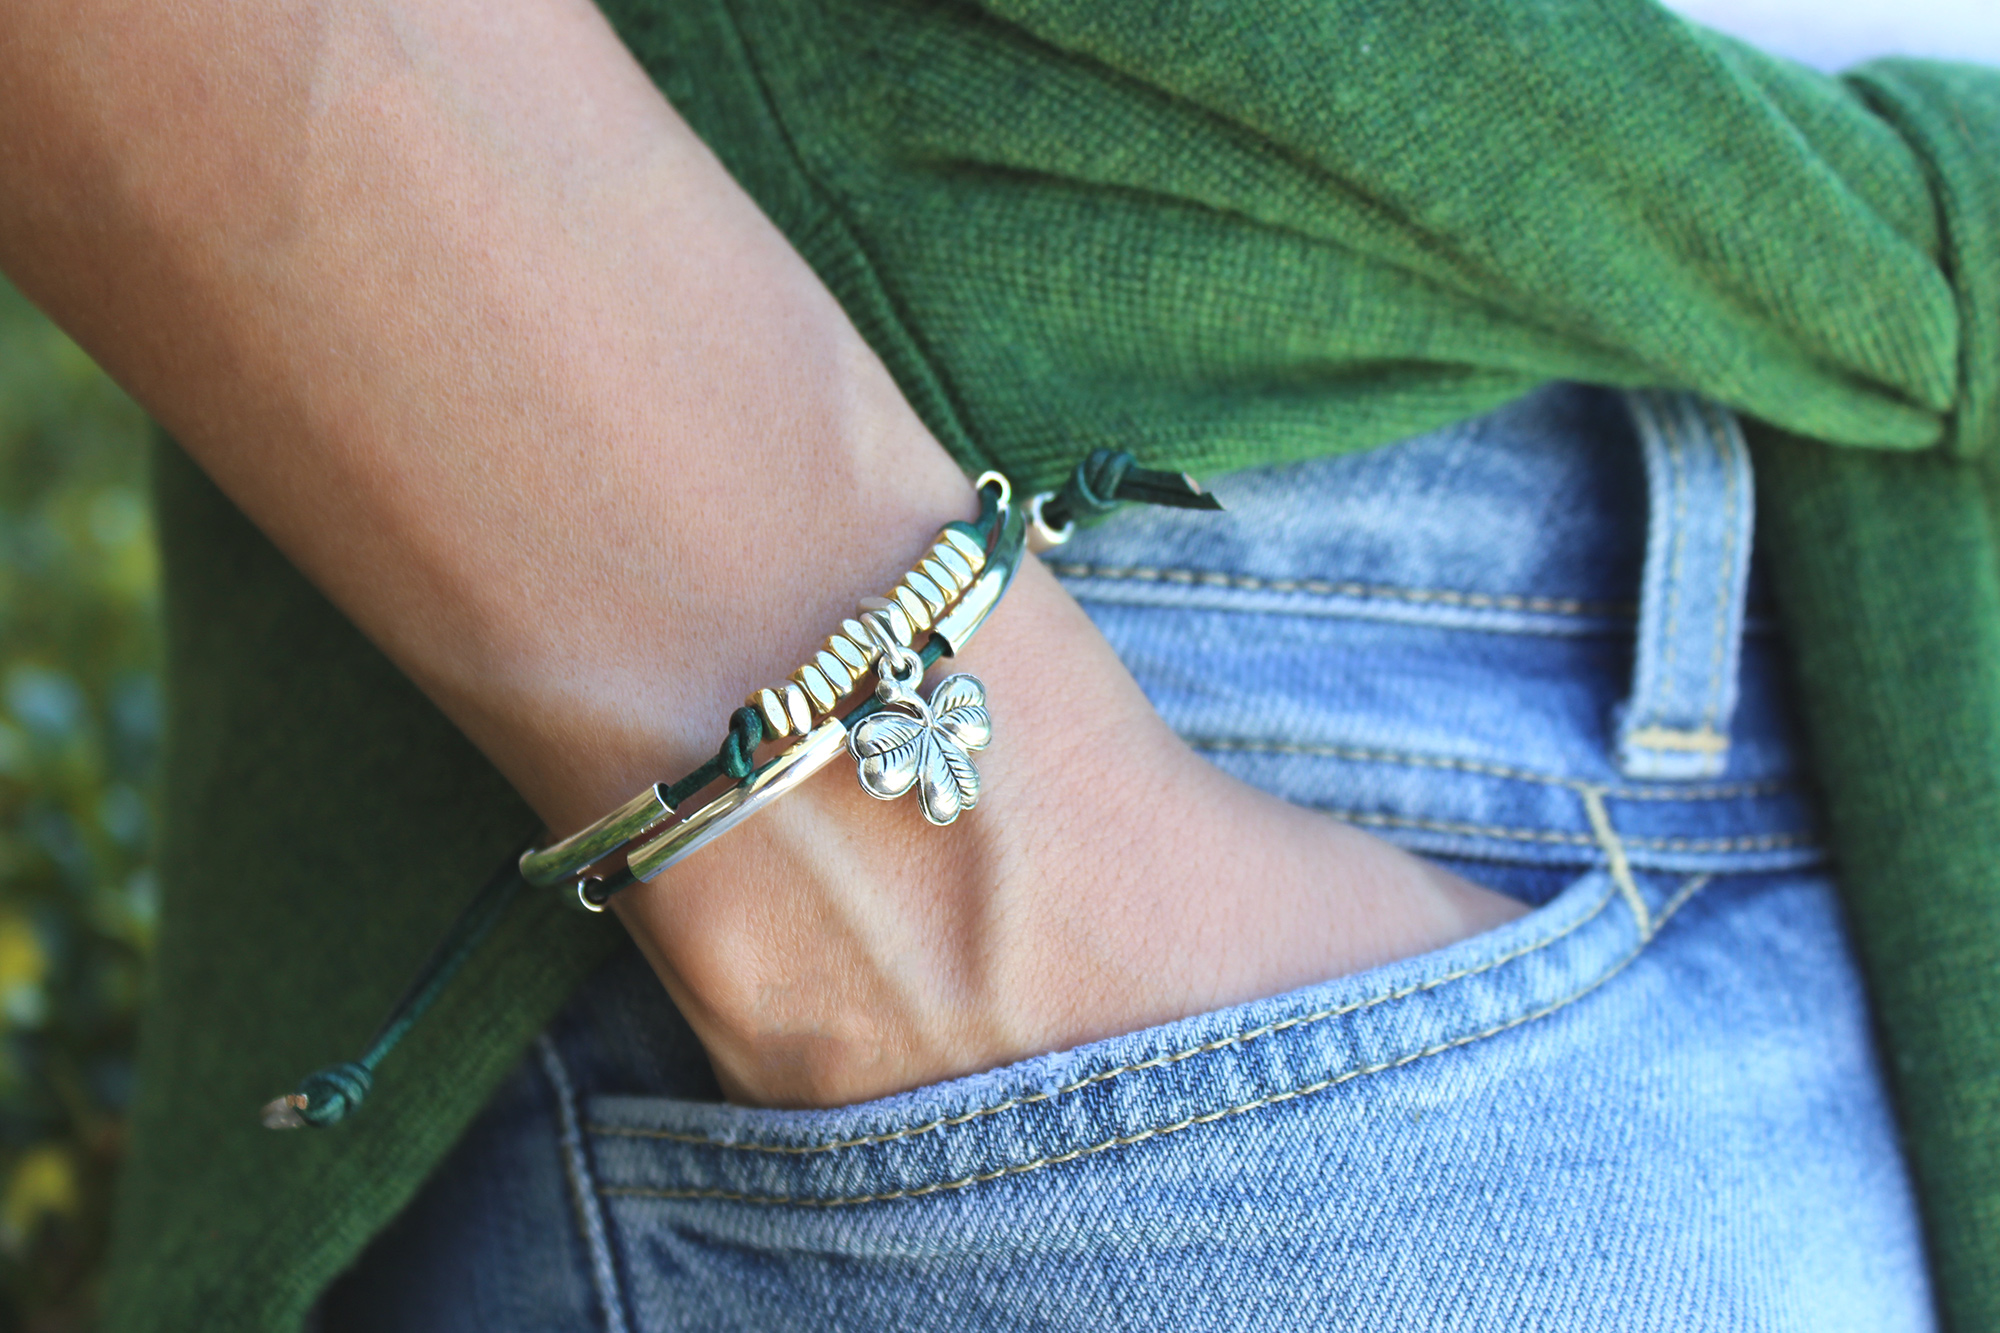 patty-joy-bracelet-st-patricks-green-colored-leather.jpg